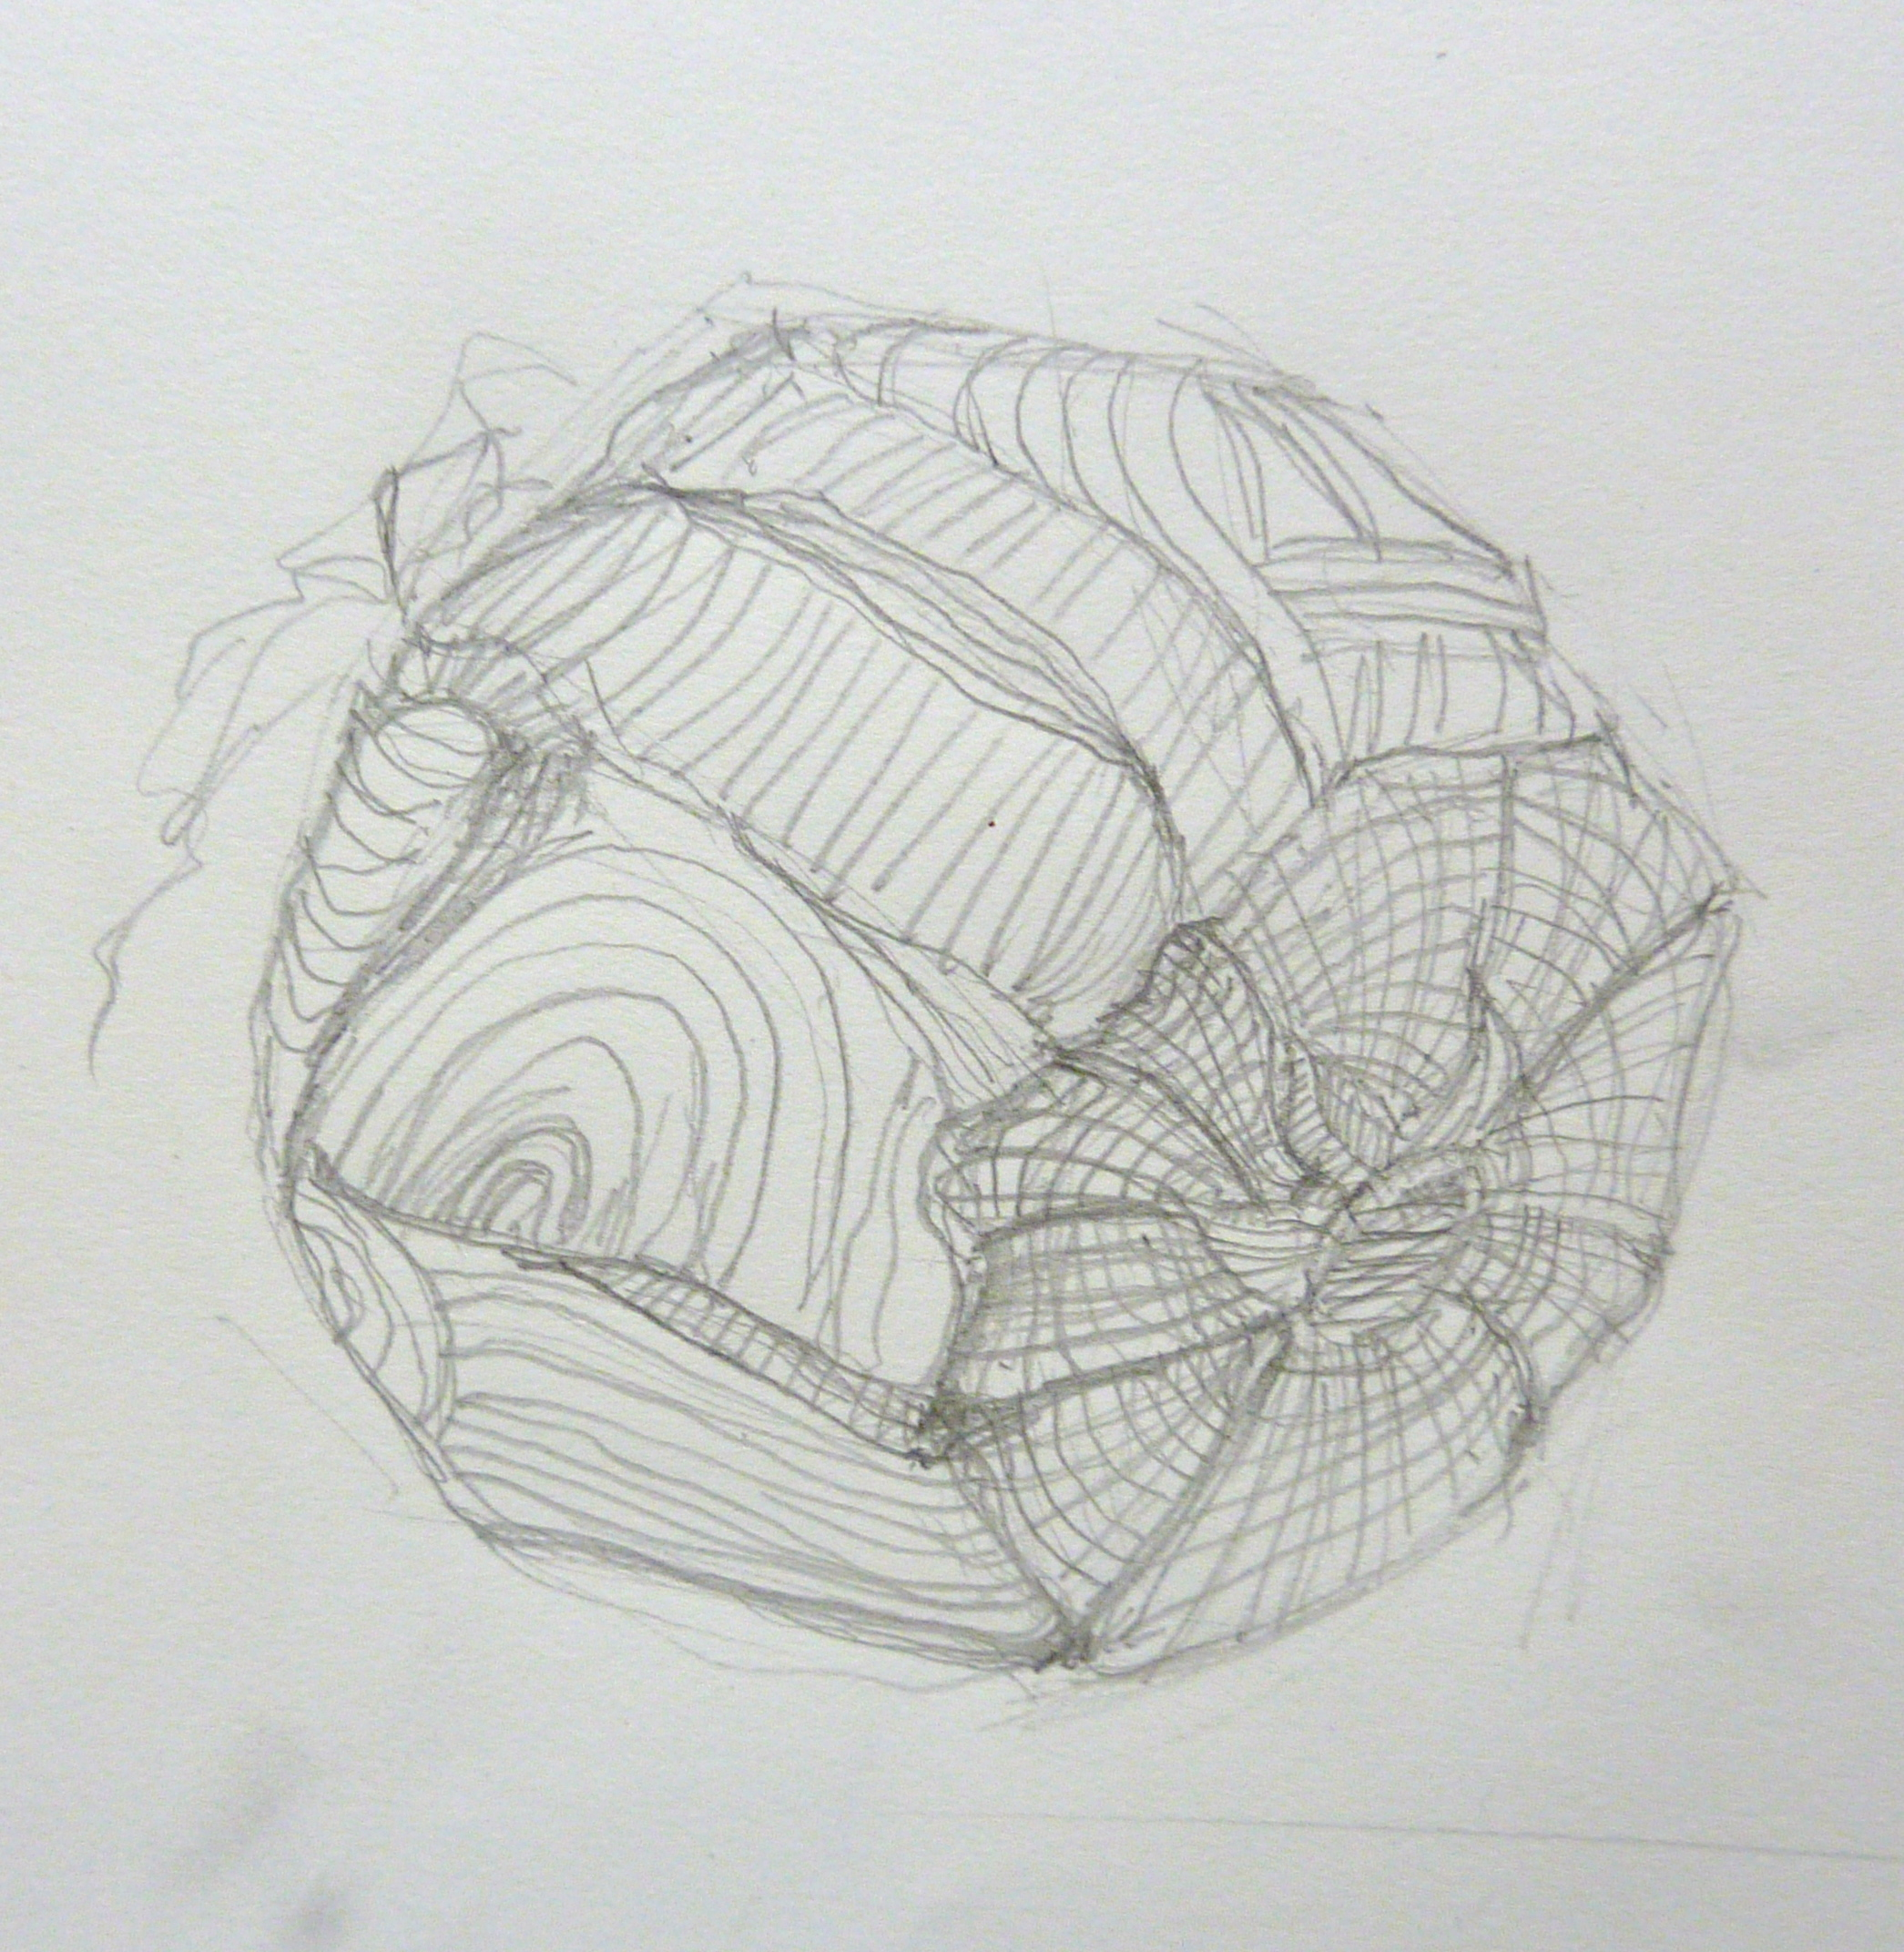 Contour Line Drawing Definition : Taking classes workshops page marlene lee art